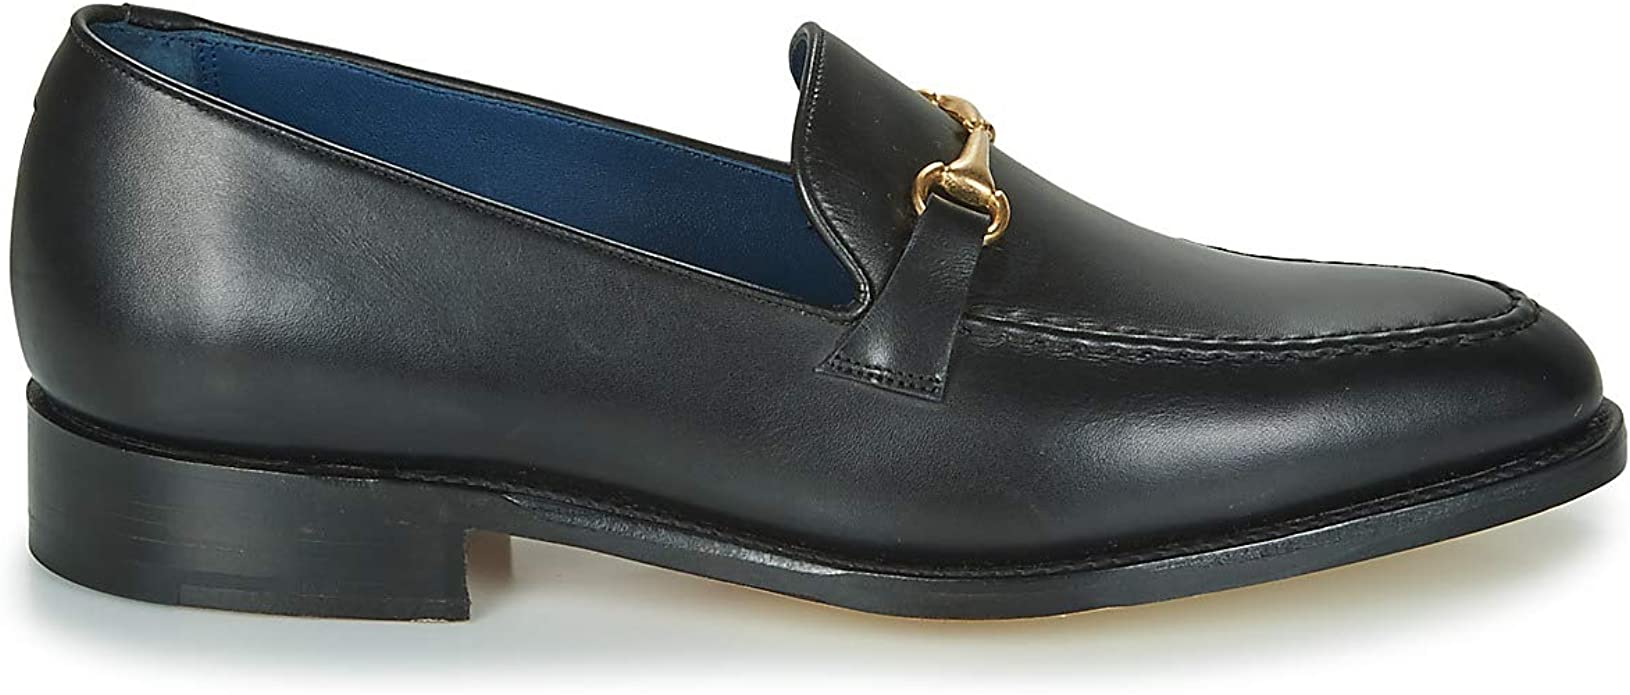 BARKER Frank Loafers & Boat Shoes Men Black Loafers Shoes: Amazon.co.uk:  Shoes & Bags